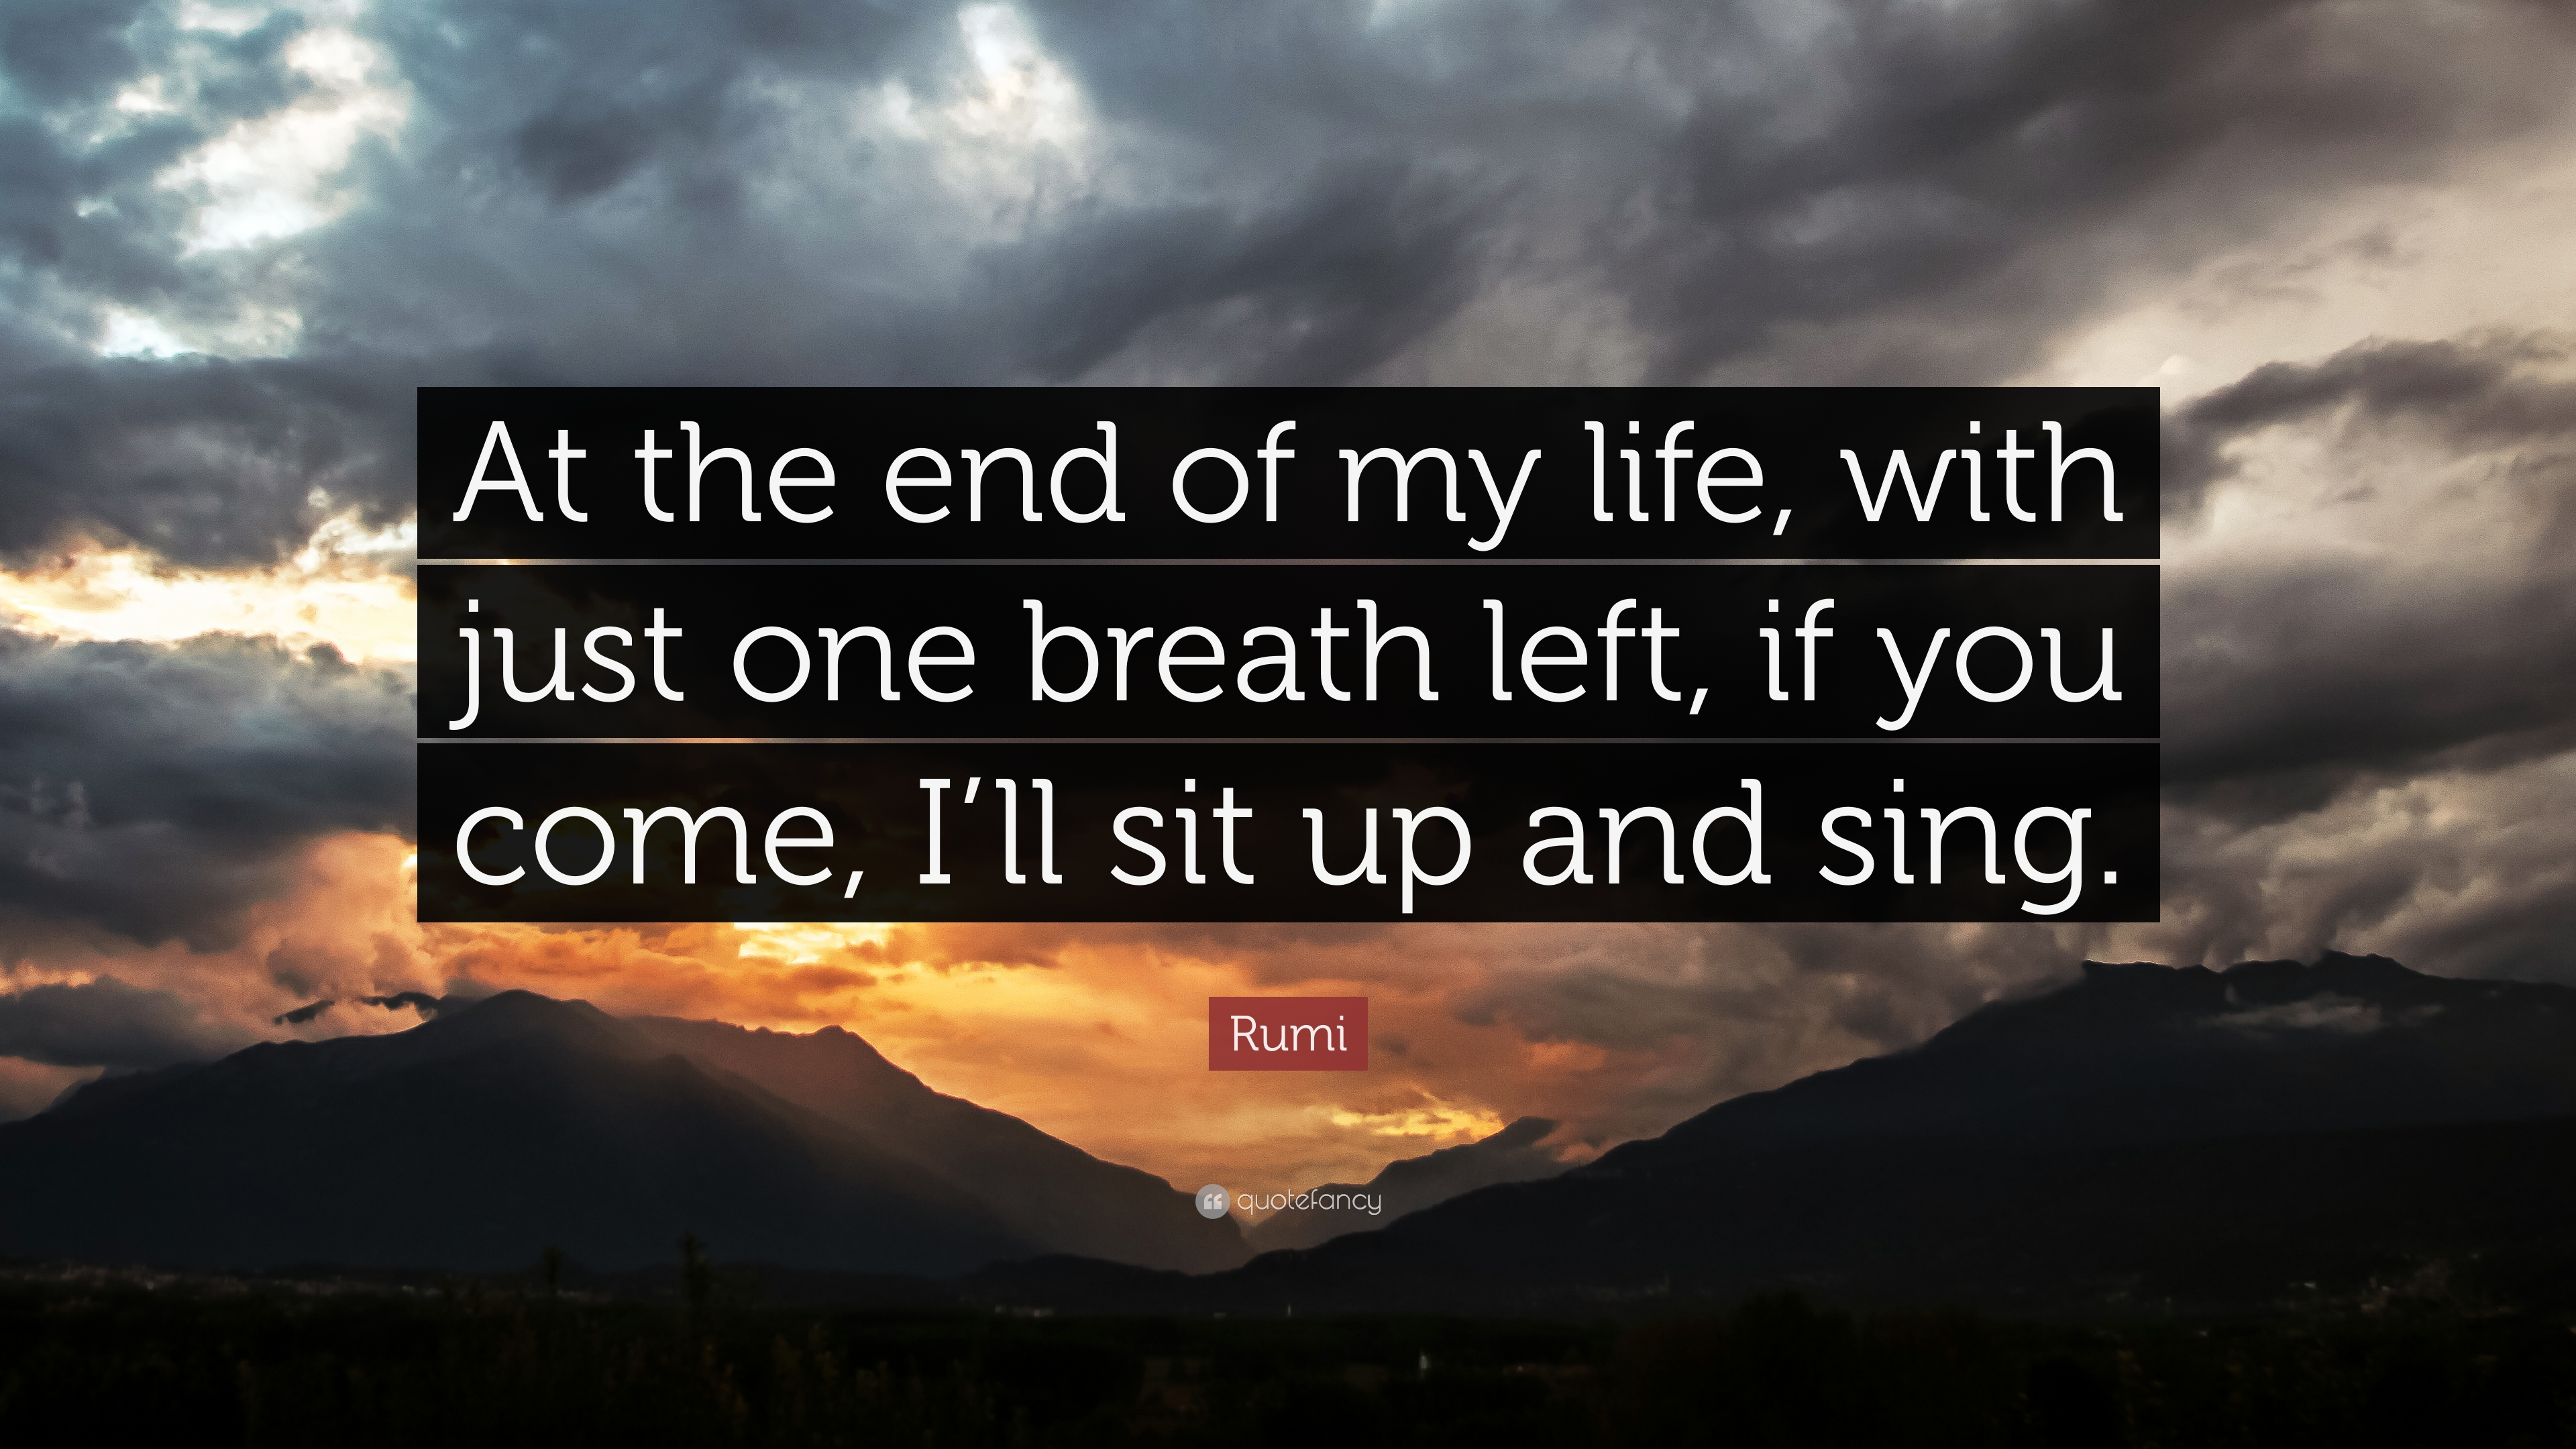 Love Is End Of Life Wallpaper : Rumi Quotes (100 wallpapers) - Quotefancy